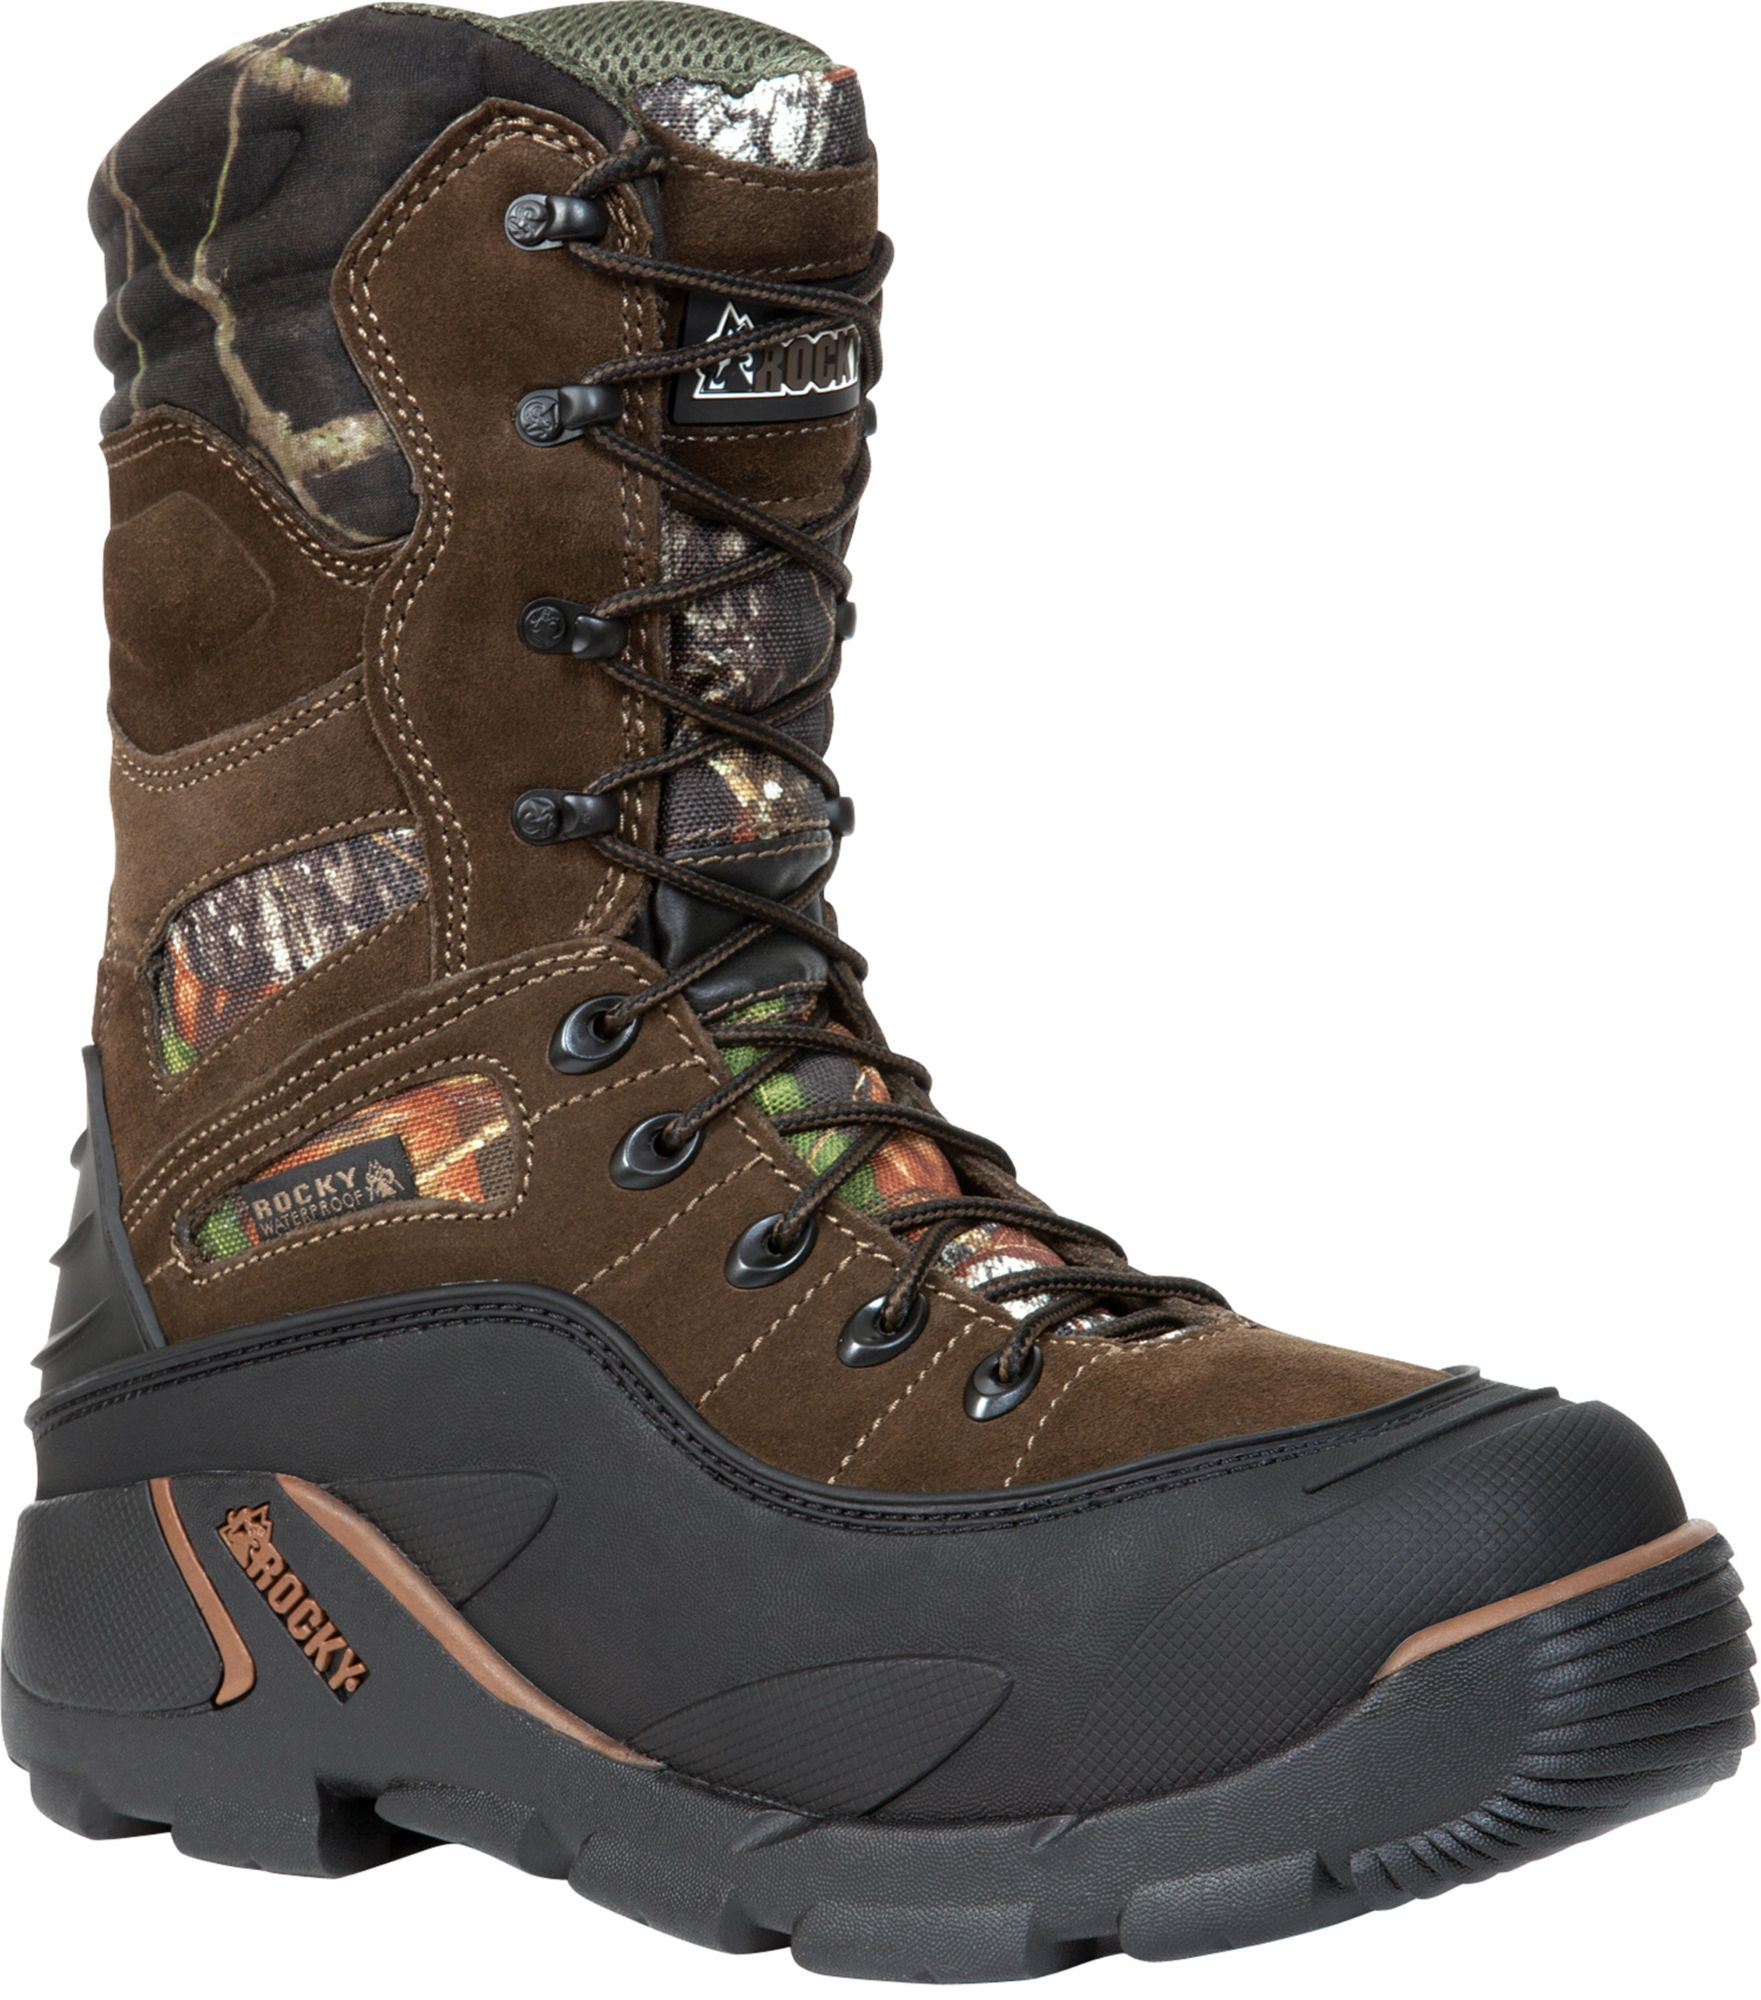 Rocky Men's BlizzardStalker PRO Mossy Oak 1200g Waterproof Winter ...